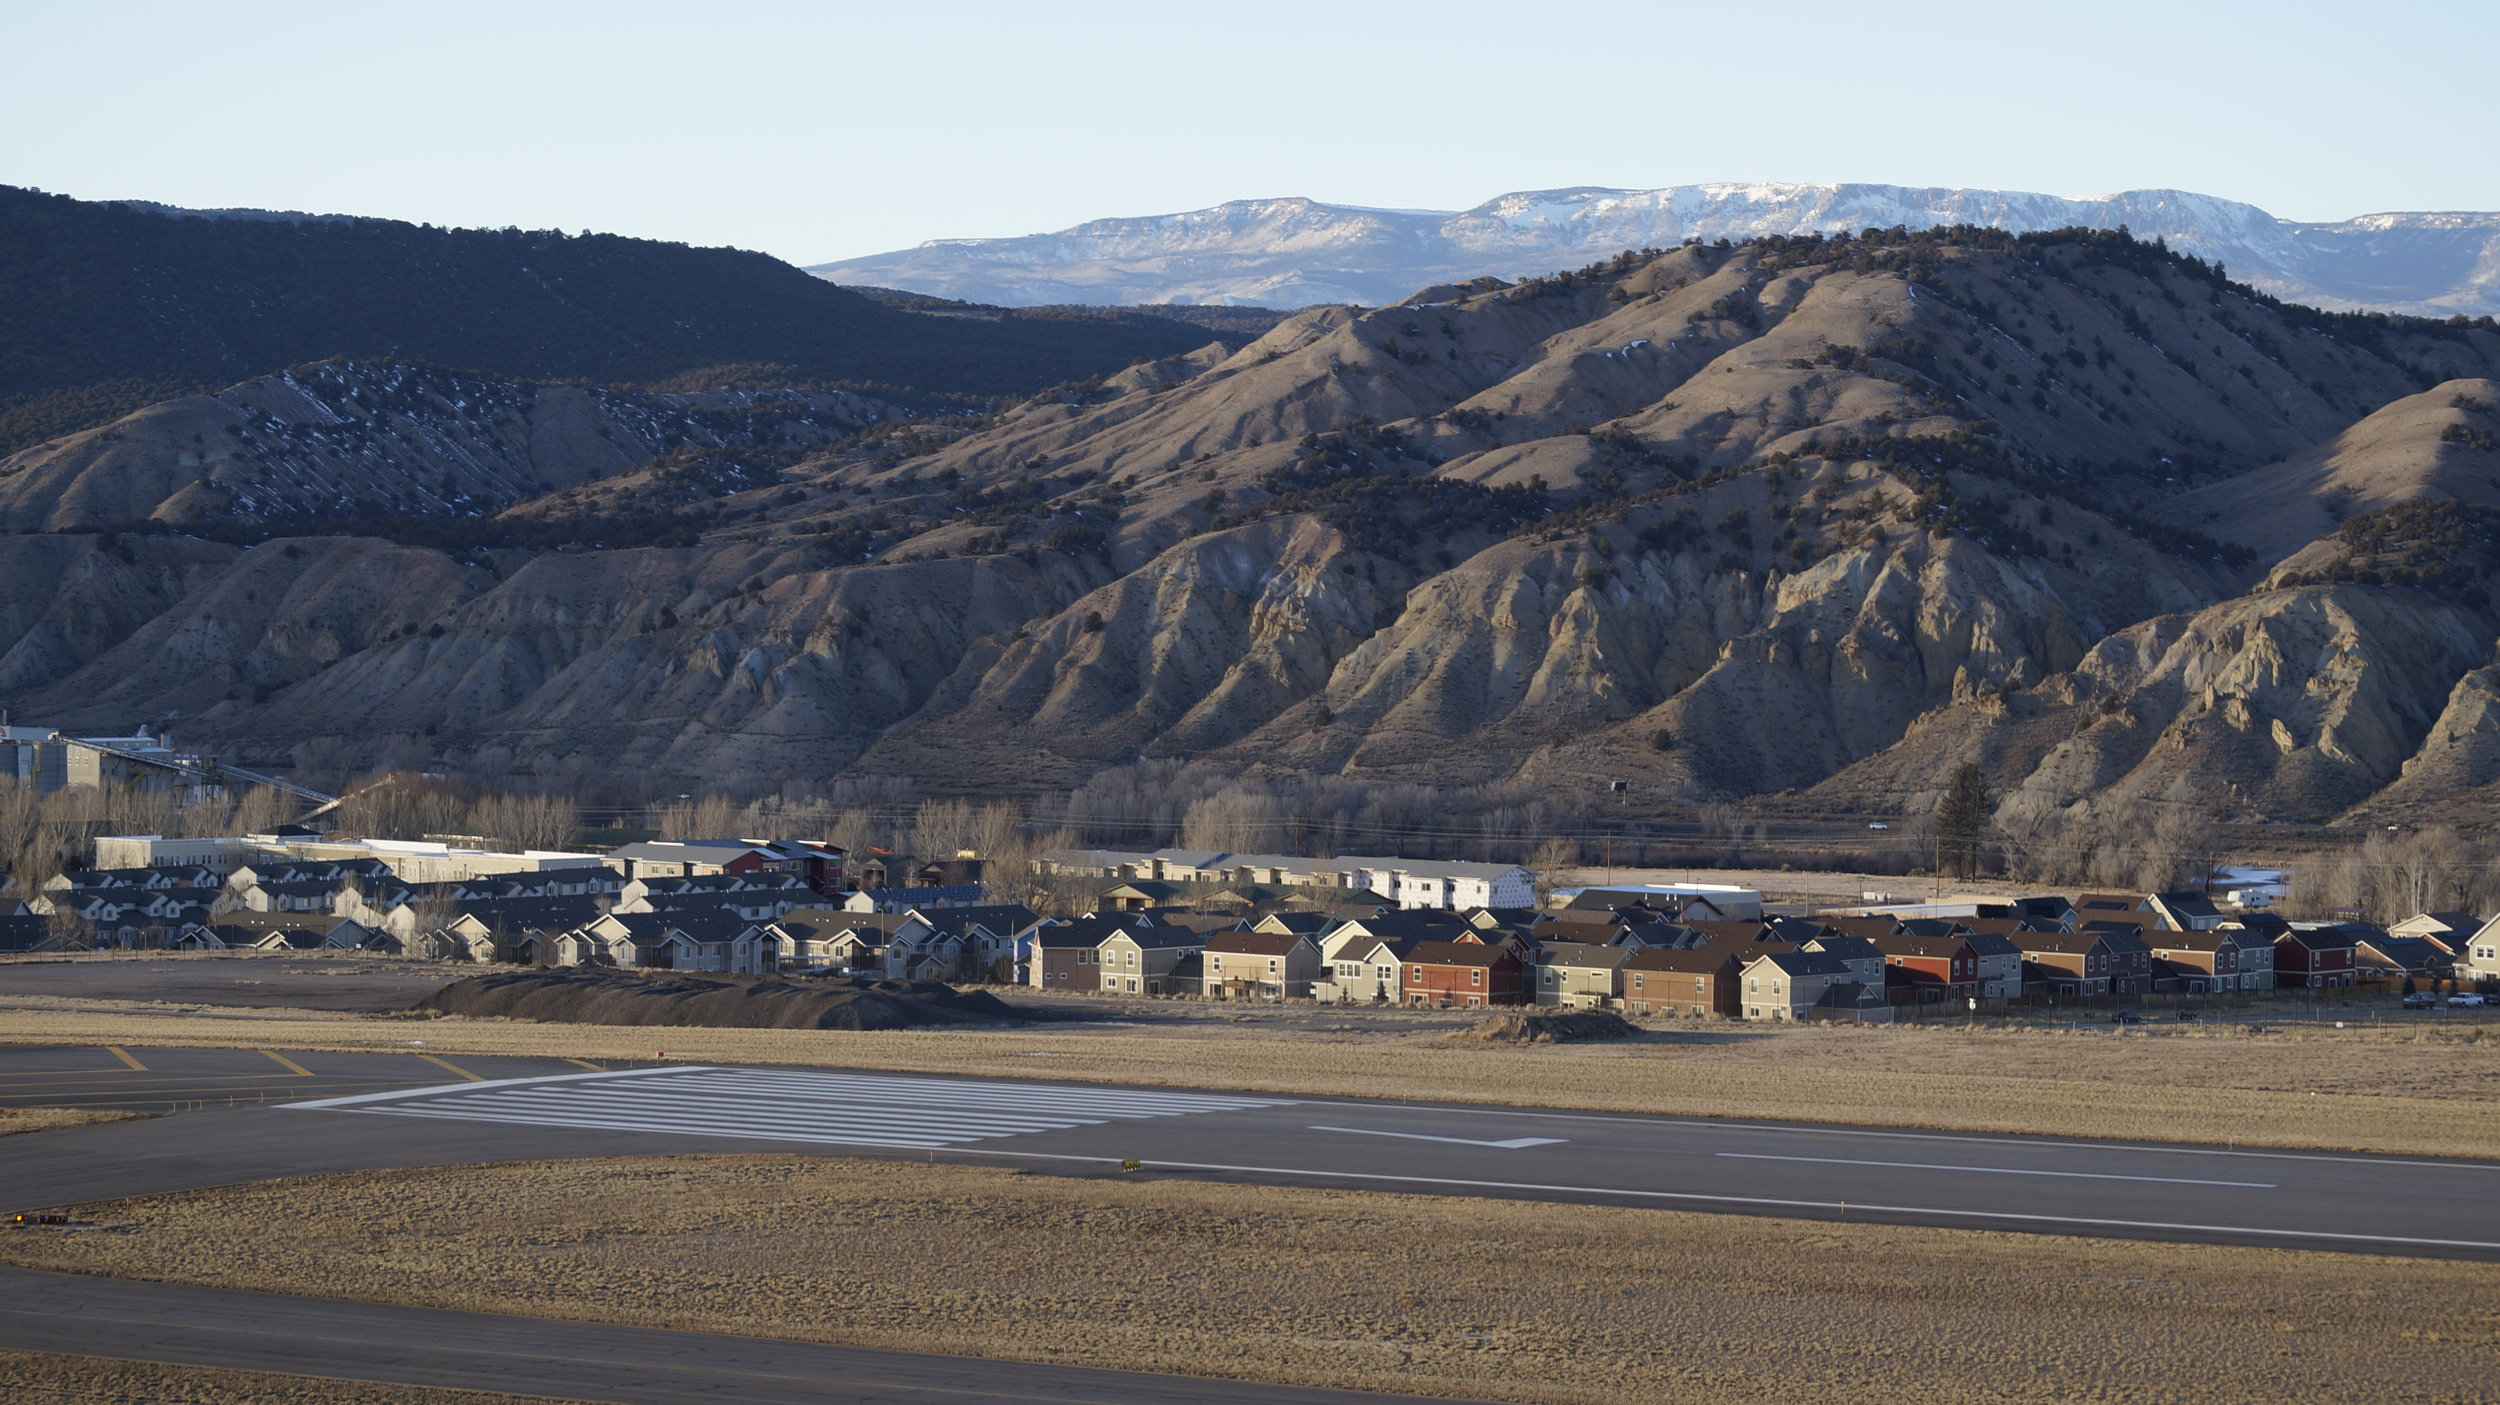 In another one of my ventures into photography from an aerial perspective, I climbed far up above Eagle County Regional Airport in Colorado and took this photo looking past the runway toward the town and mountains that sit behind it.